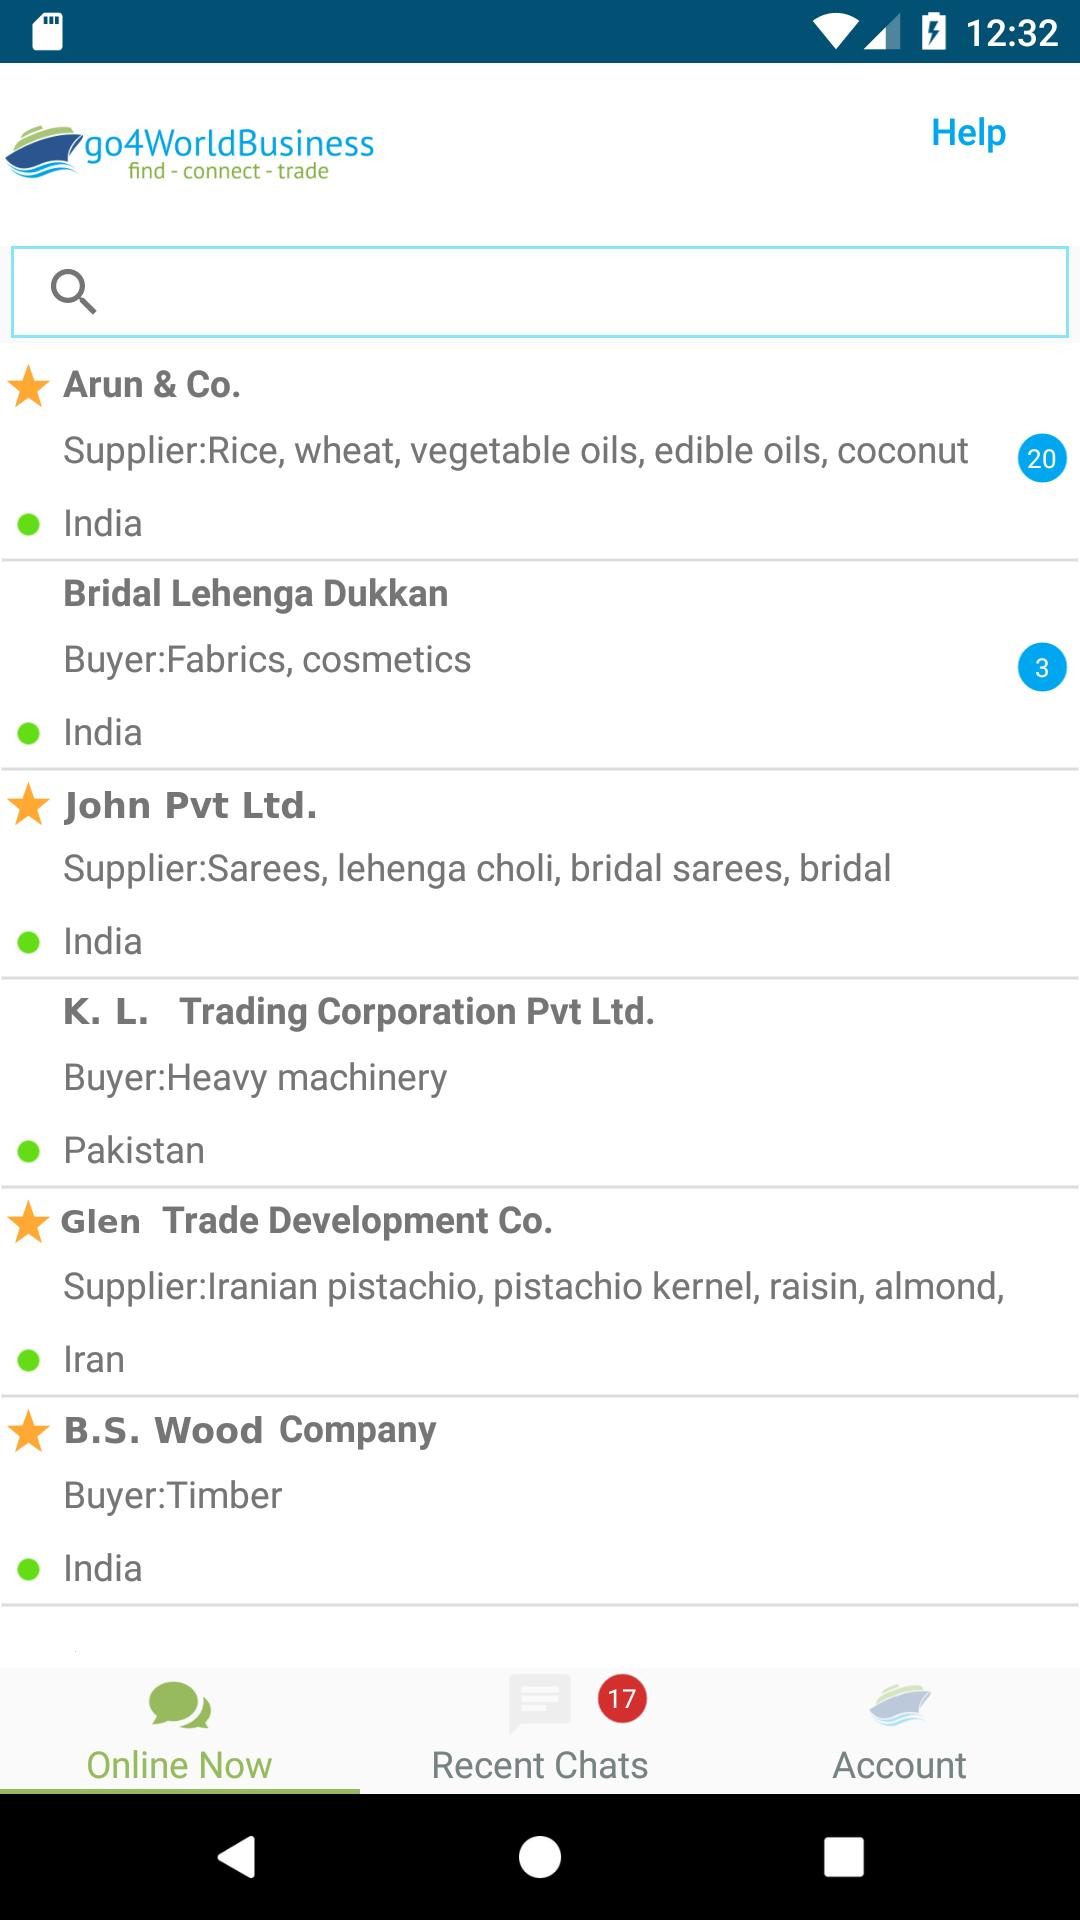 go4WorldBusiness : Wholesale Import/Export & Trade for Android - APK